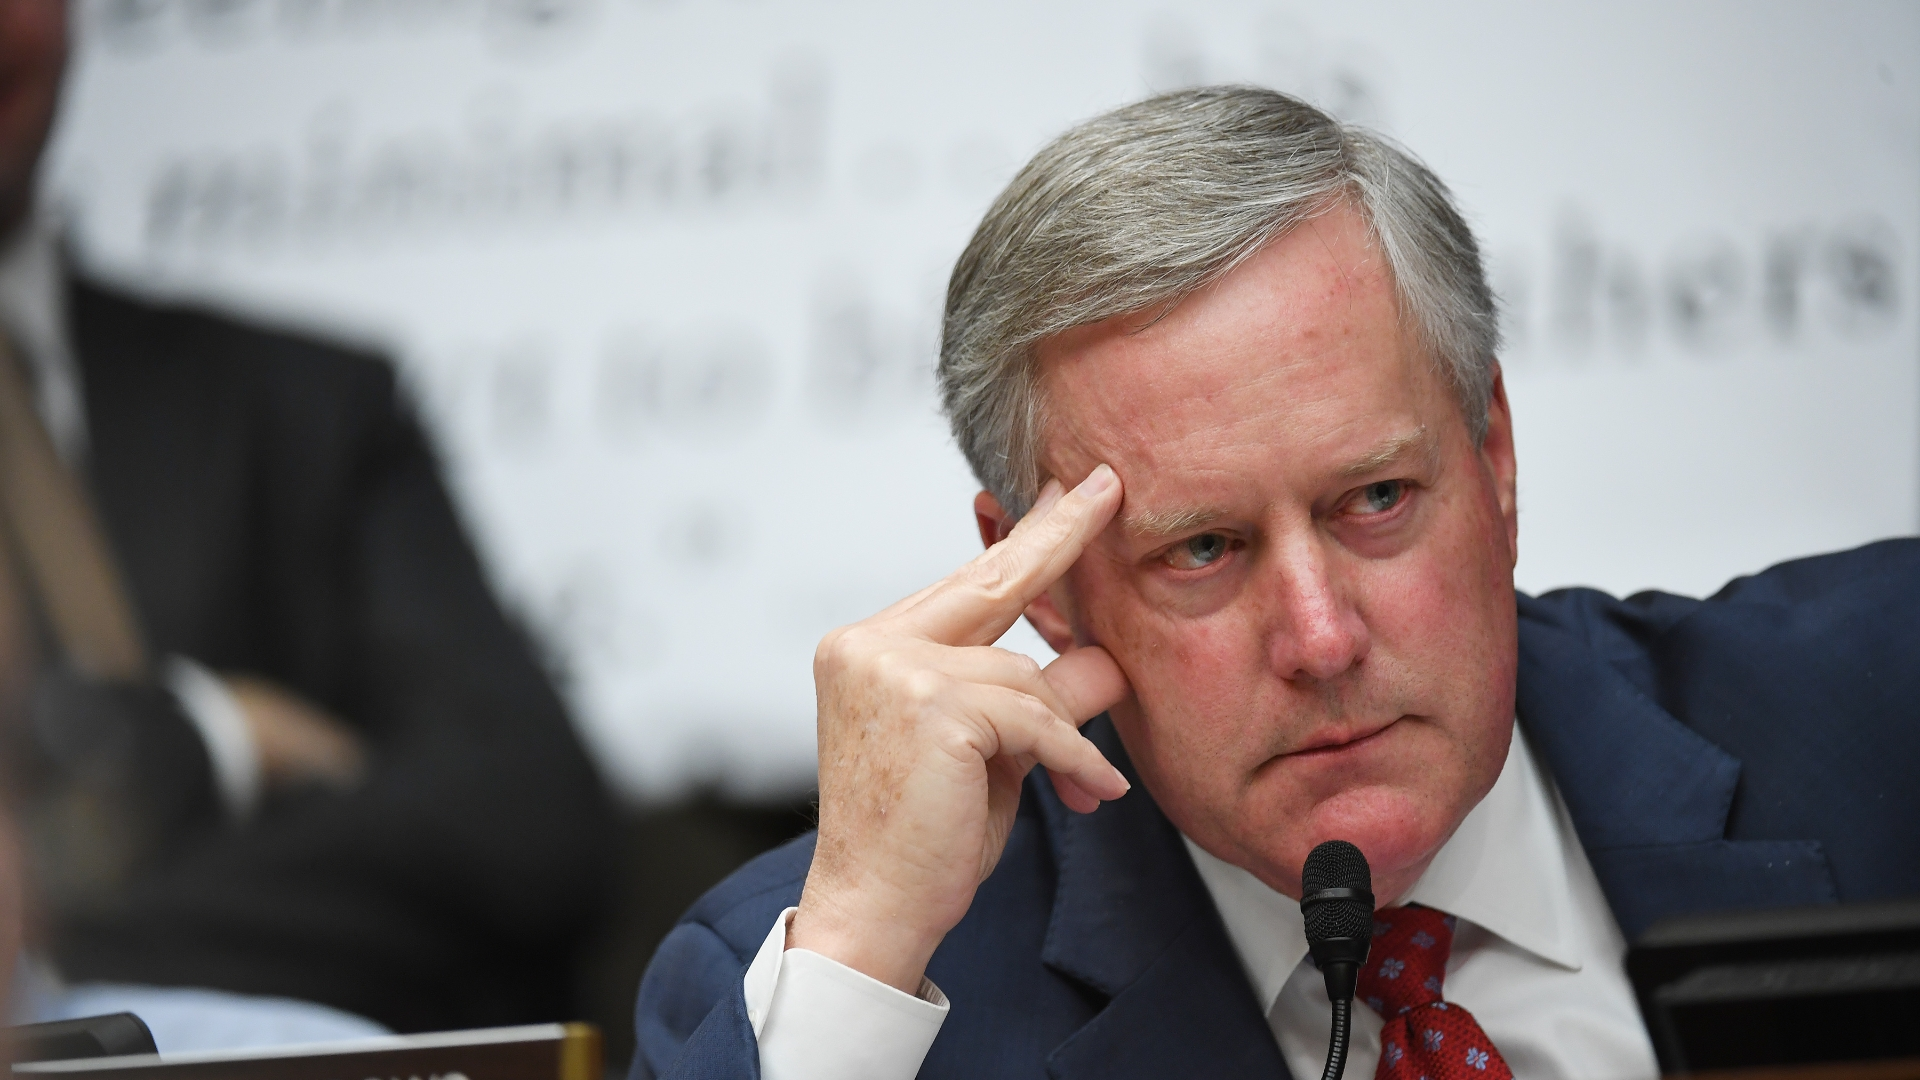 Videos of Mark Meadows saying 'send Obama home to Kenya' resurface hours after he's accused of racist stunt